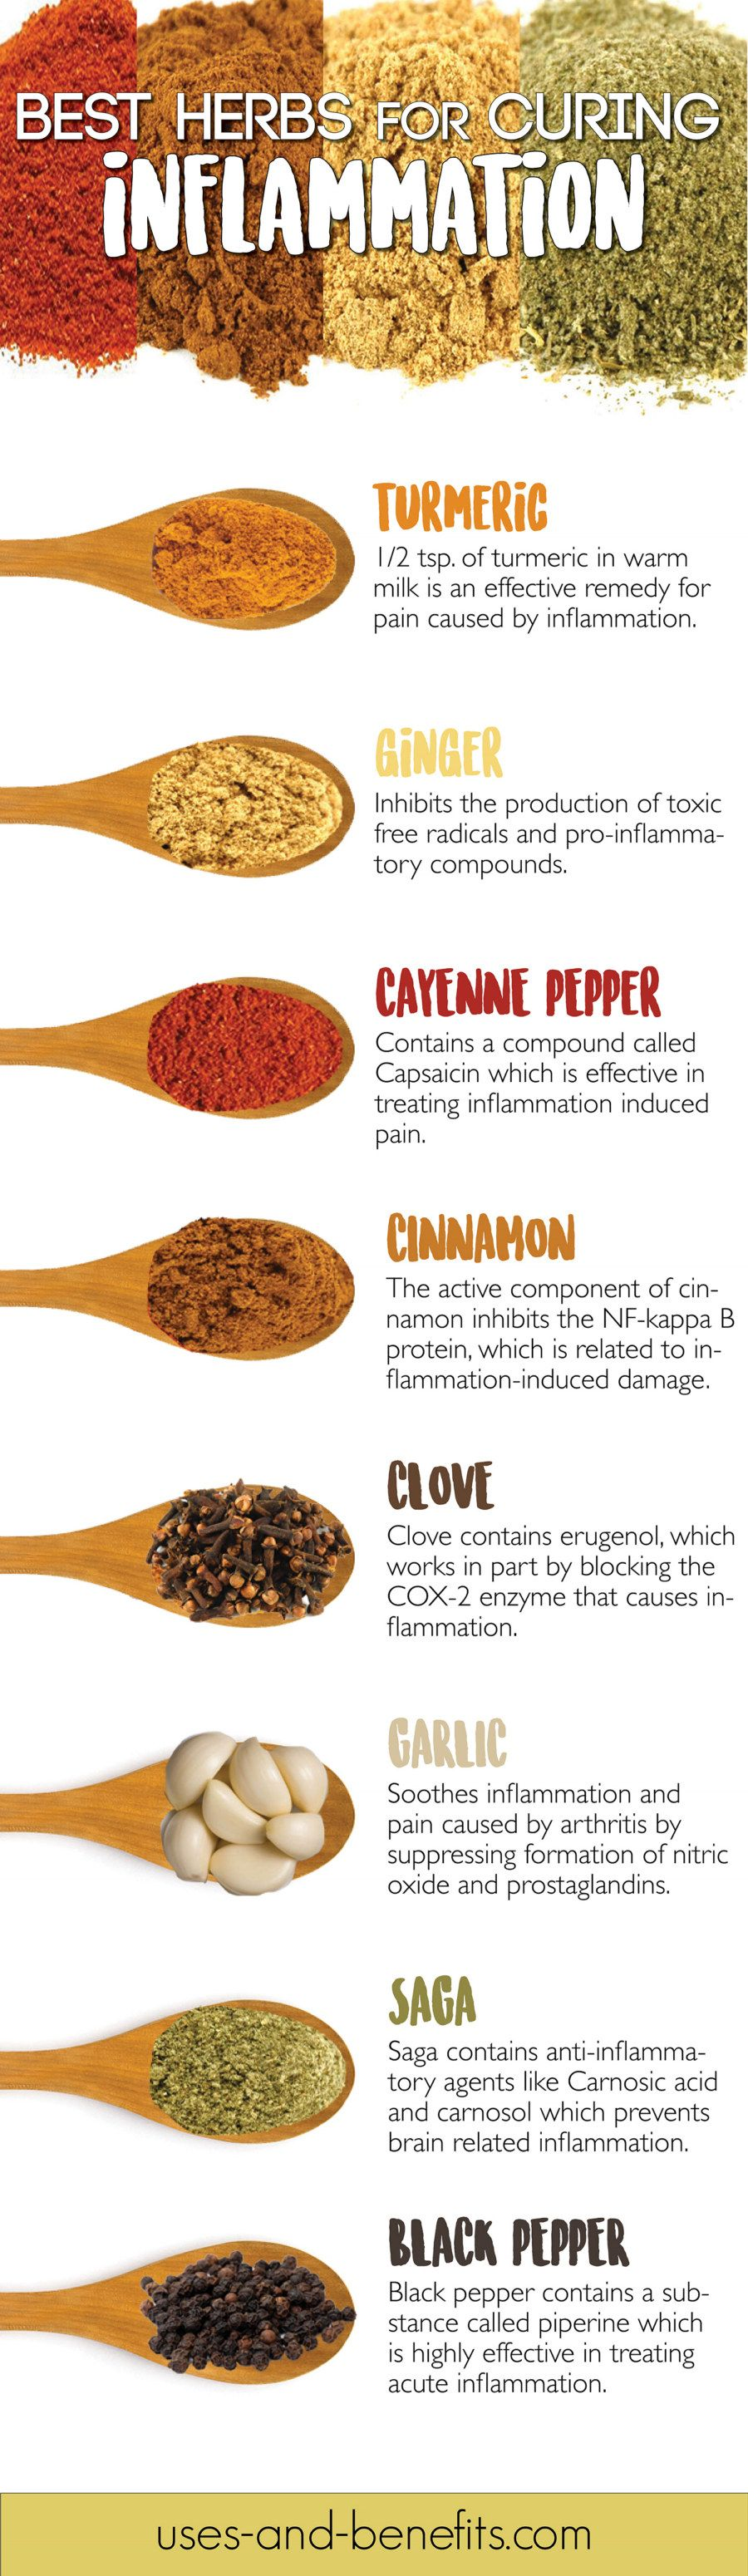 Best Herbs for Curing Inflammation Fast #Infographic